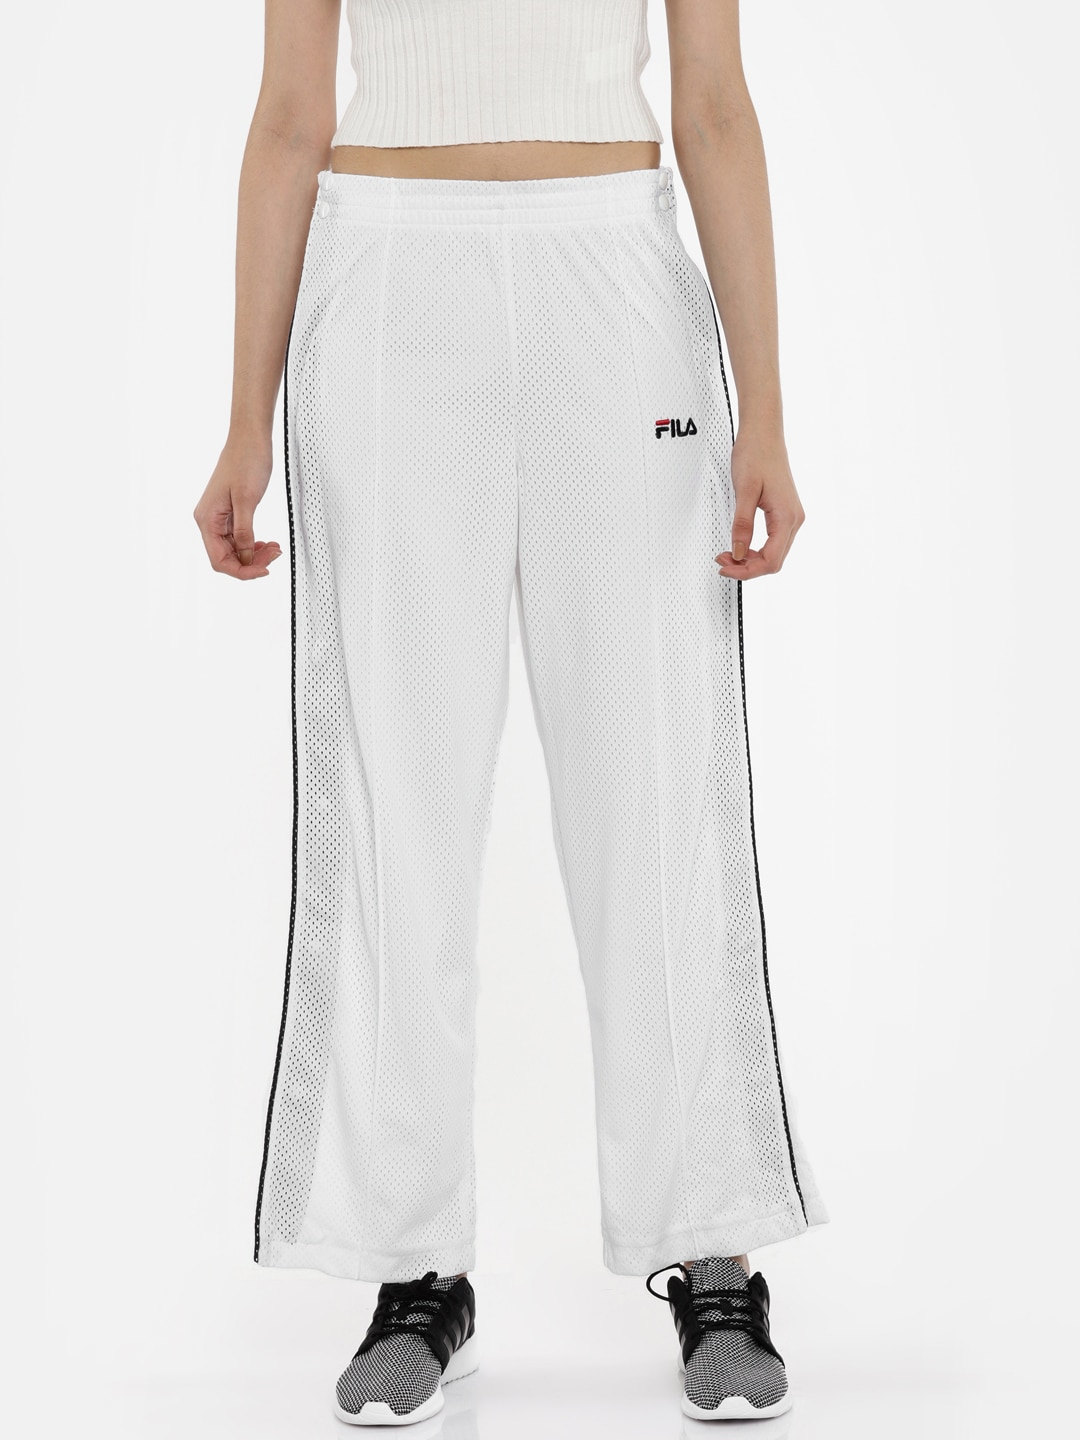 e073aed88 SIMILAR PRODUCTS. FILA. Rs. 3999 Rs. 1799 (55% OFF). Women Track Pants. Puma